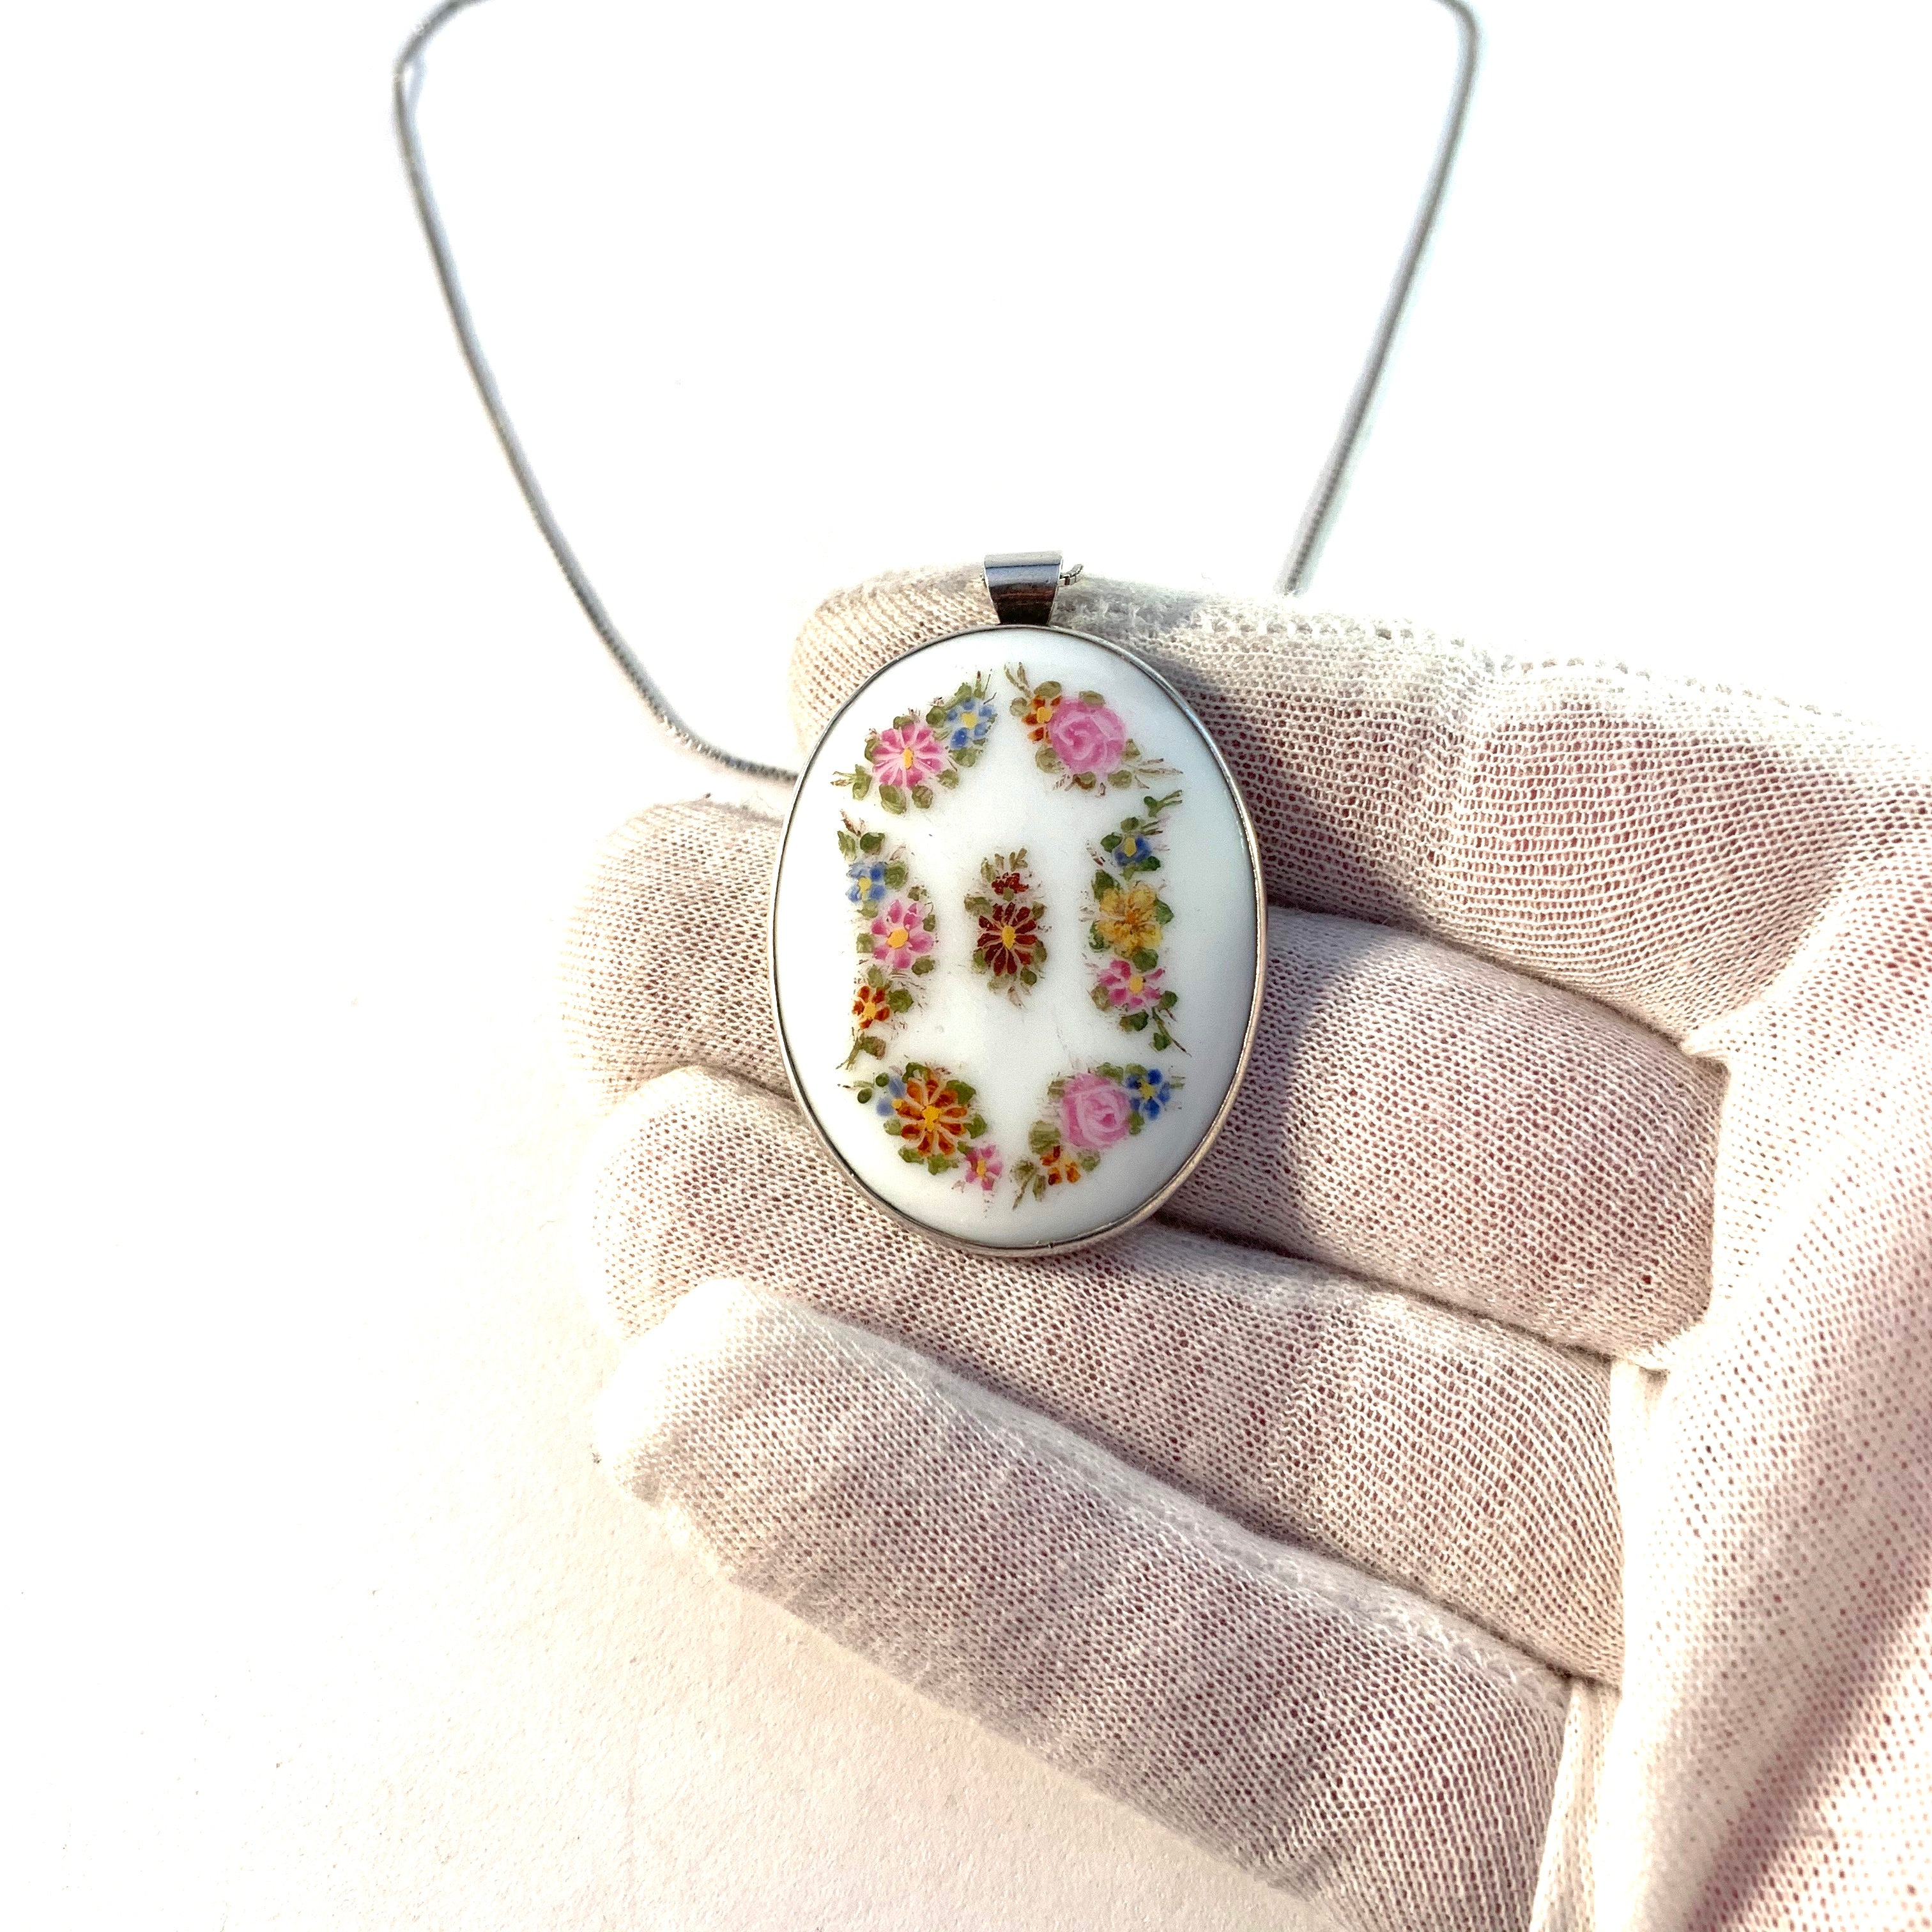 A Nilsson, father of Wiwen Nilsson, Sweden year 1916 Silver Painted Porcelain Pendant.